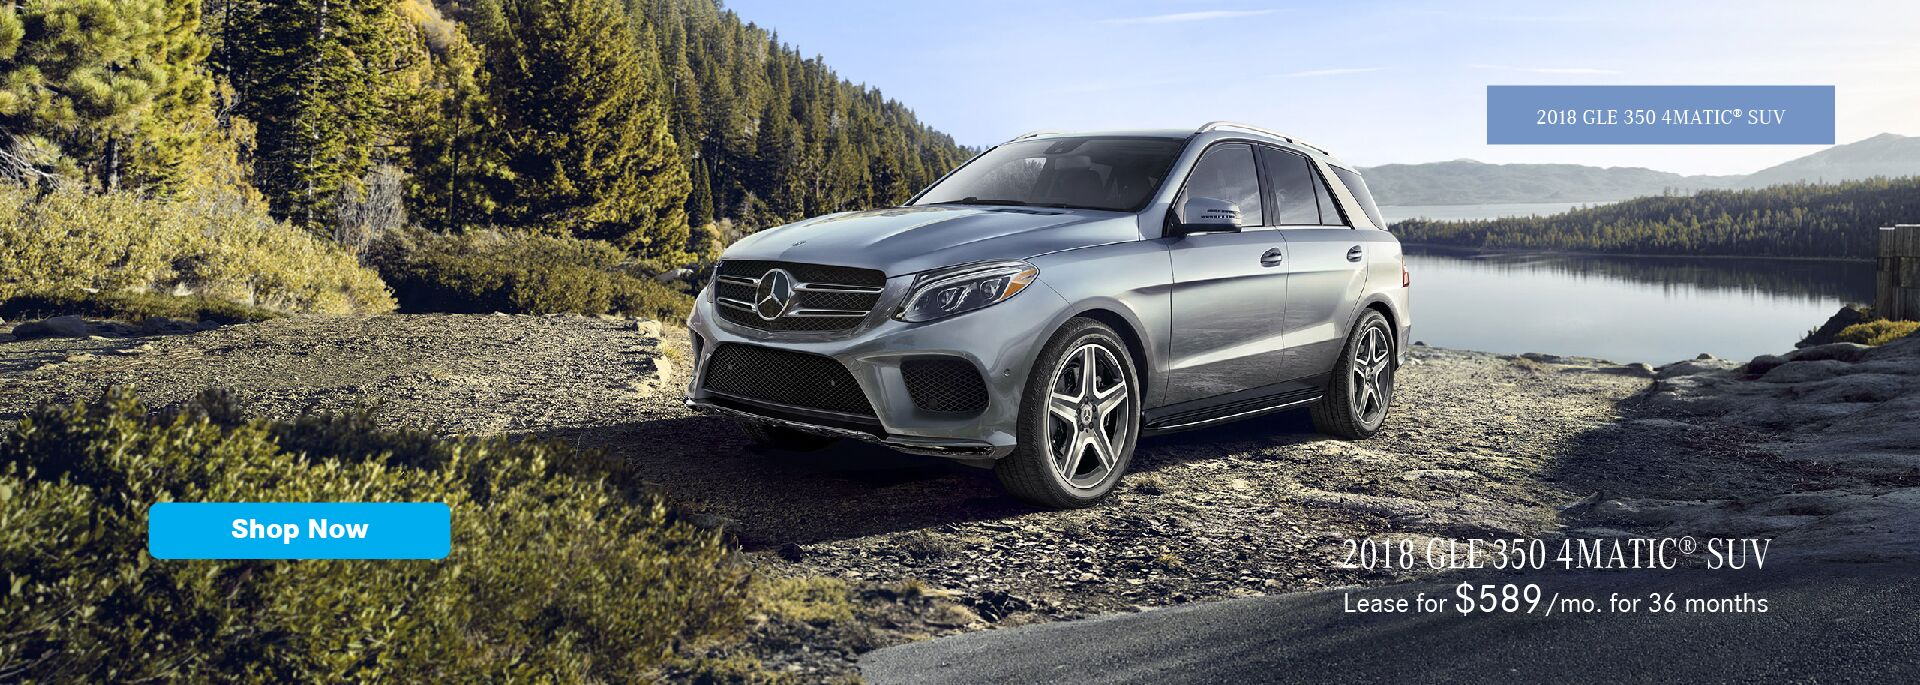 2018 GLE 350 4MATIC® SUV